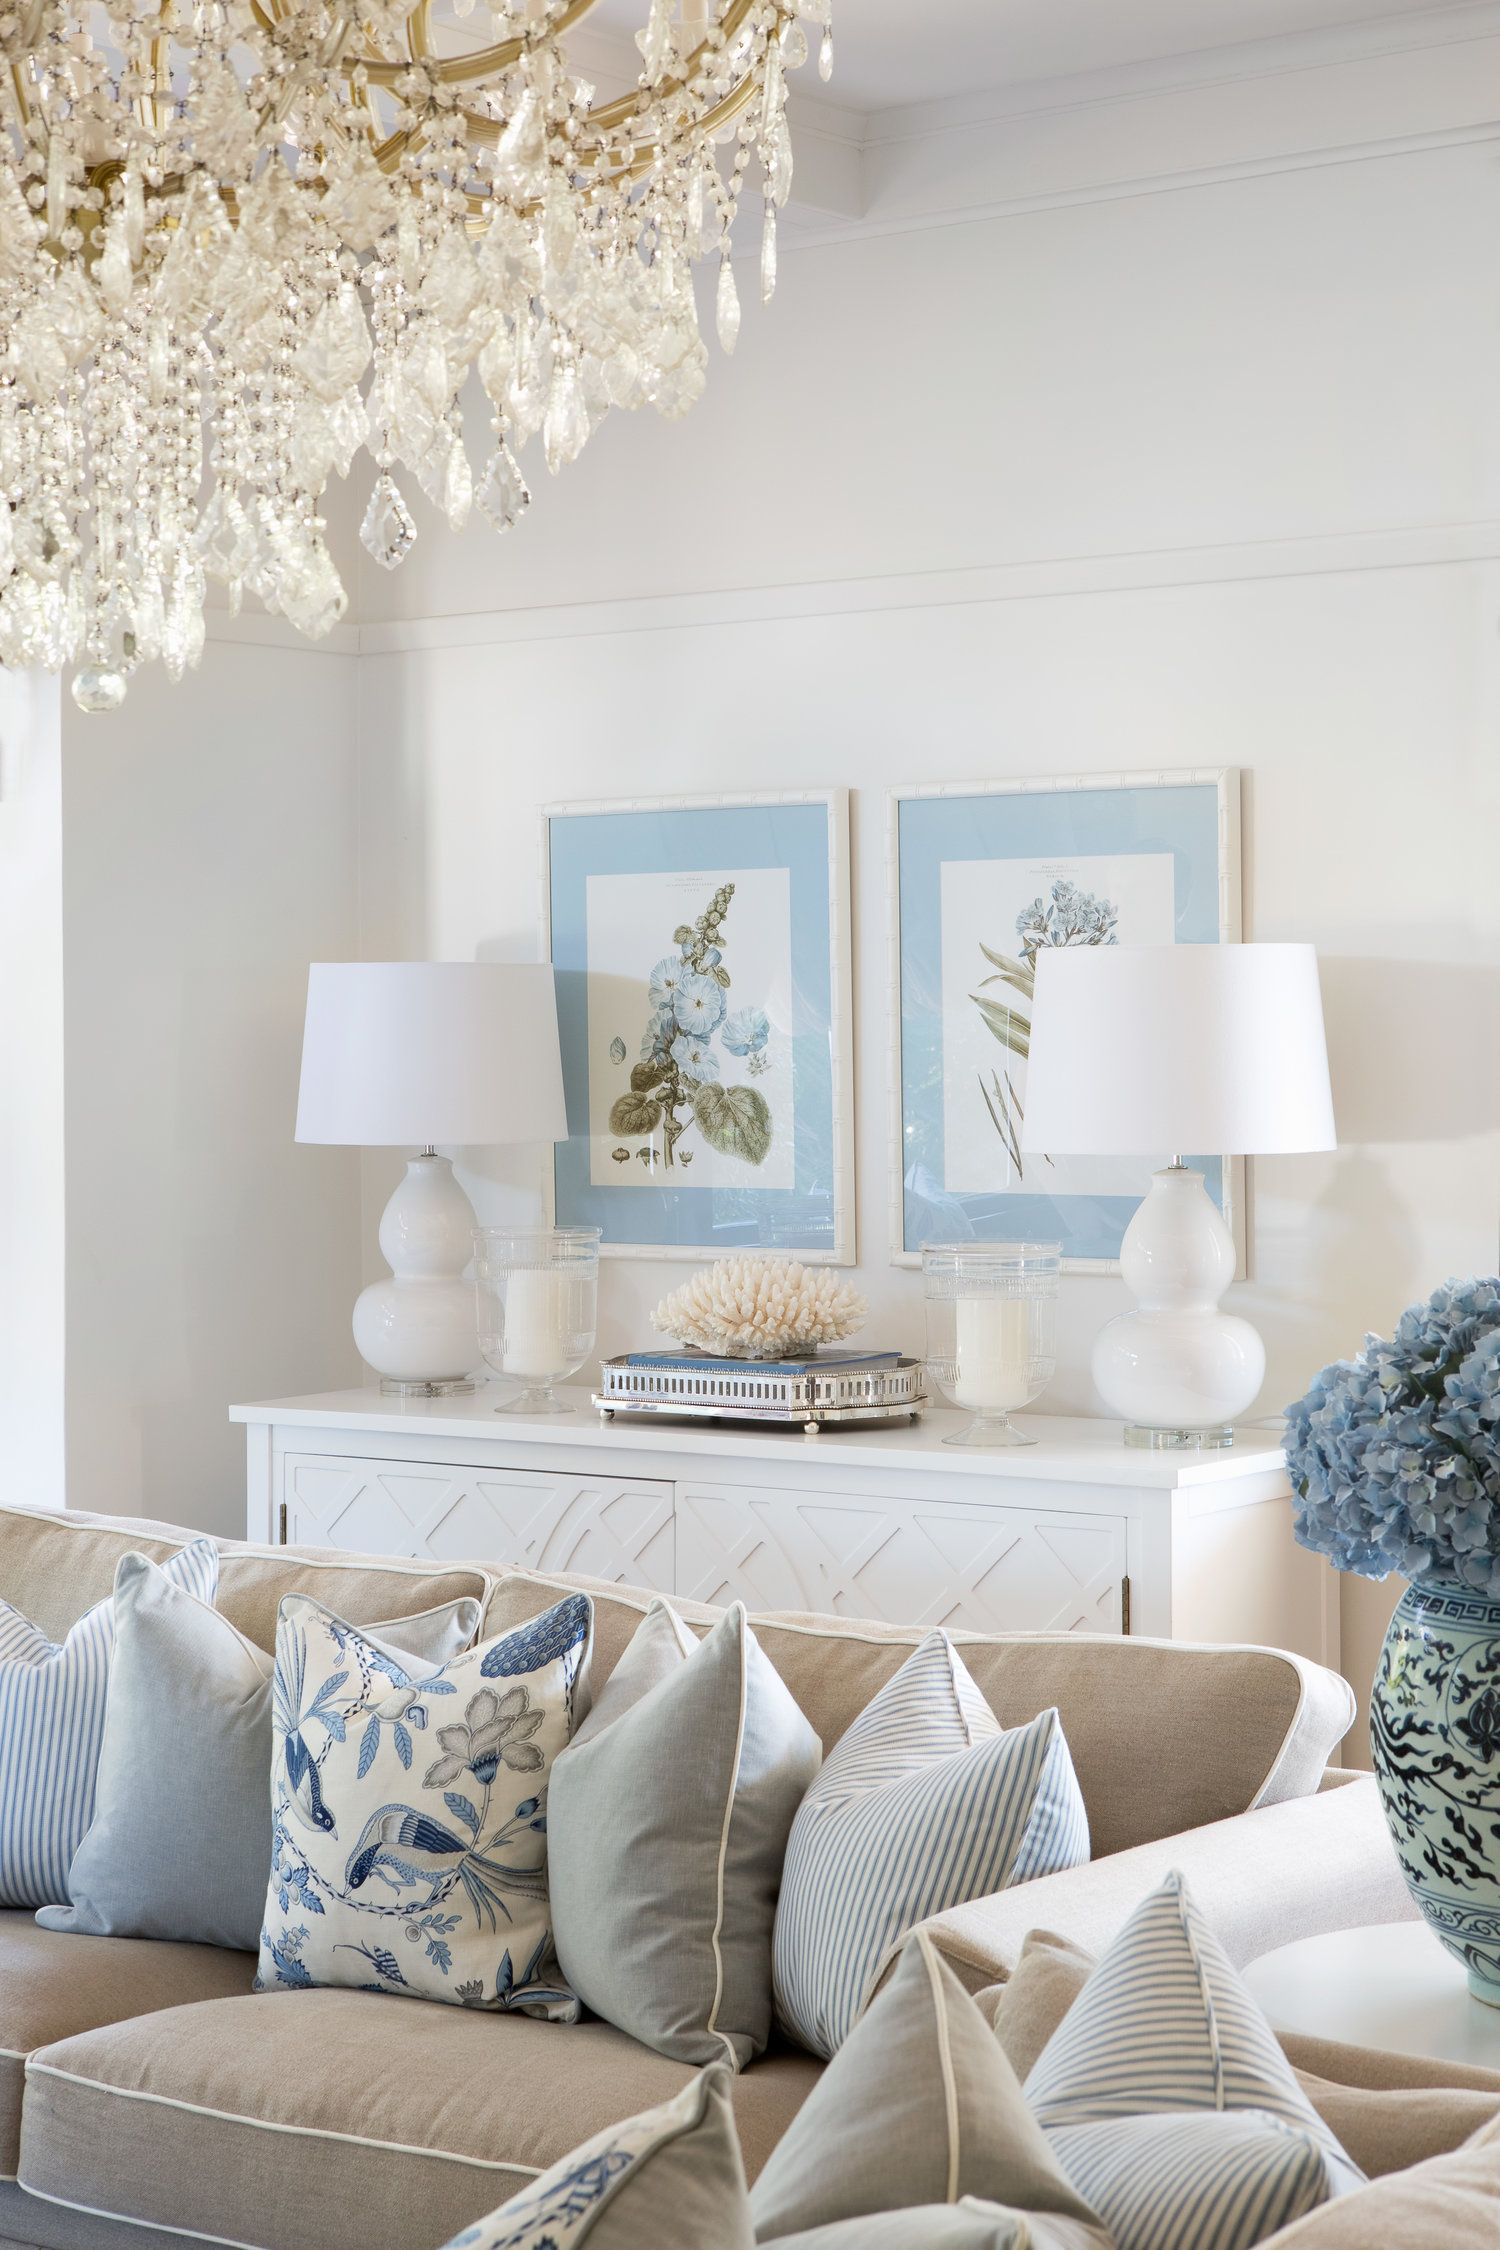 New American Classic Style Interior Decorating And Styling By